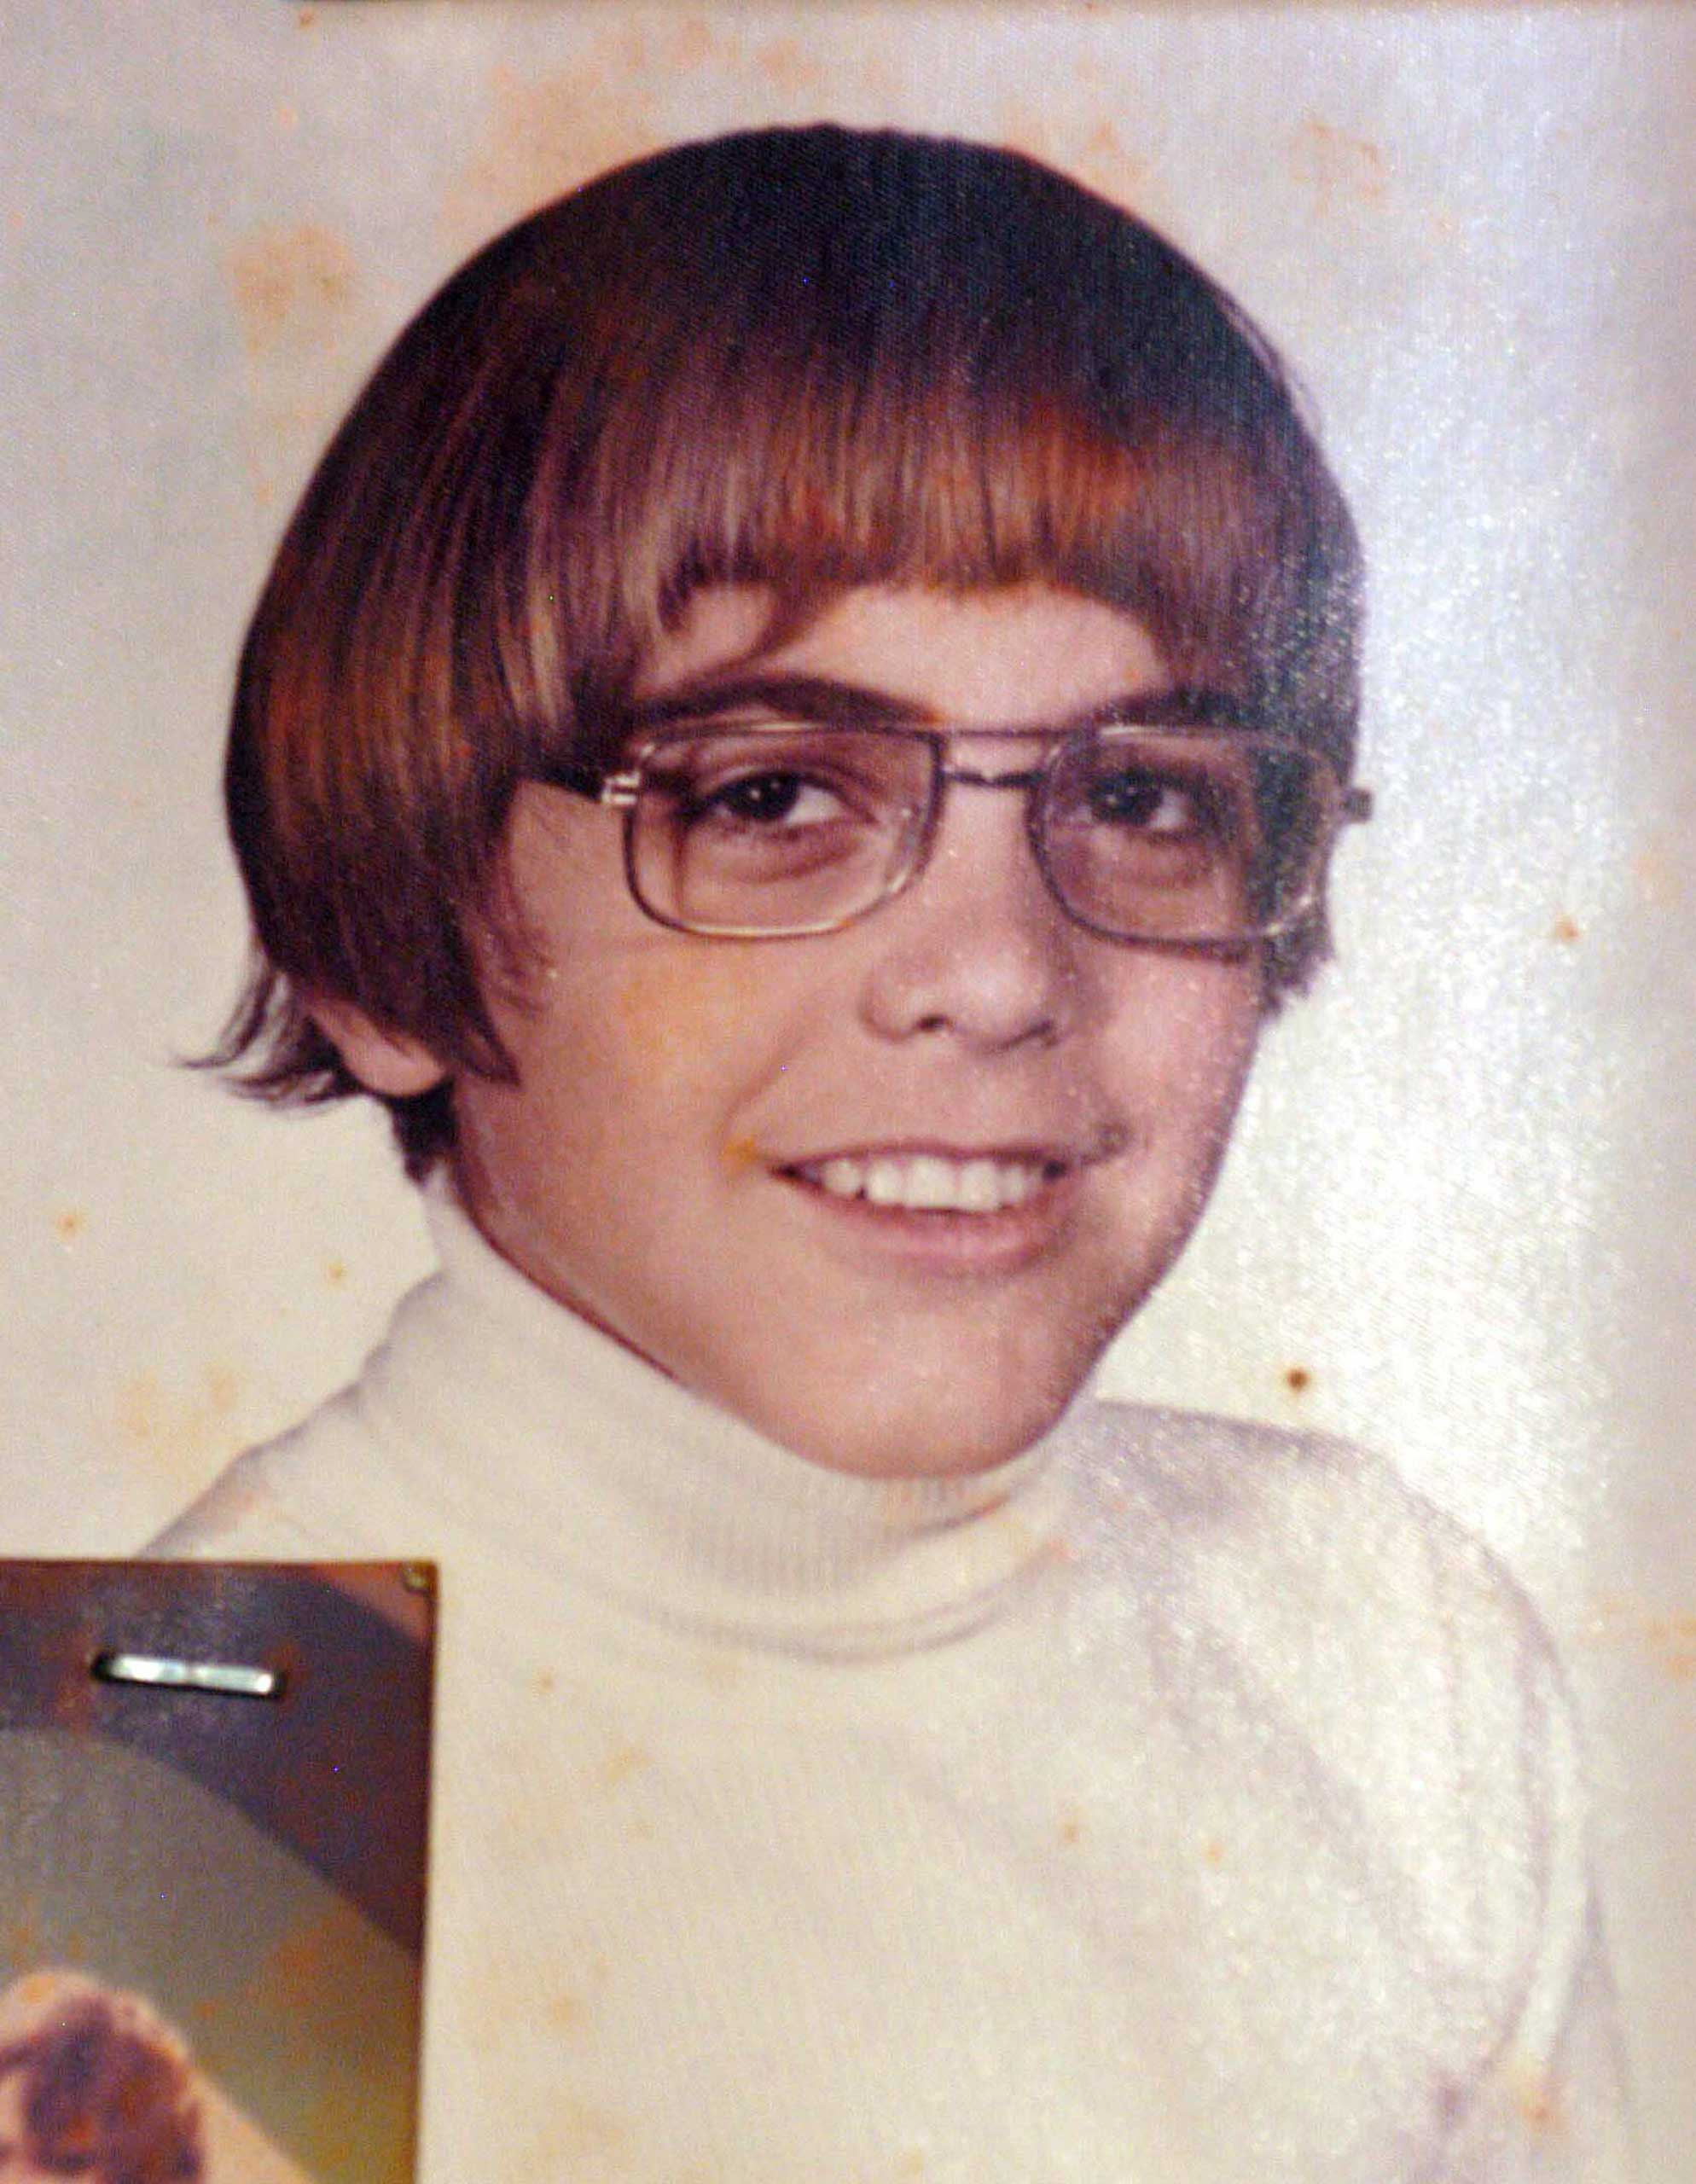 """Nerds of the world take heart: This is how the future """"Sexiest Man Alive"""" looked in middle school."""